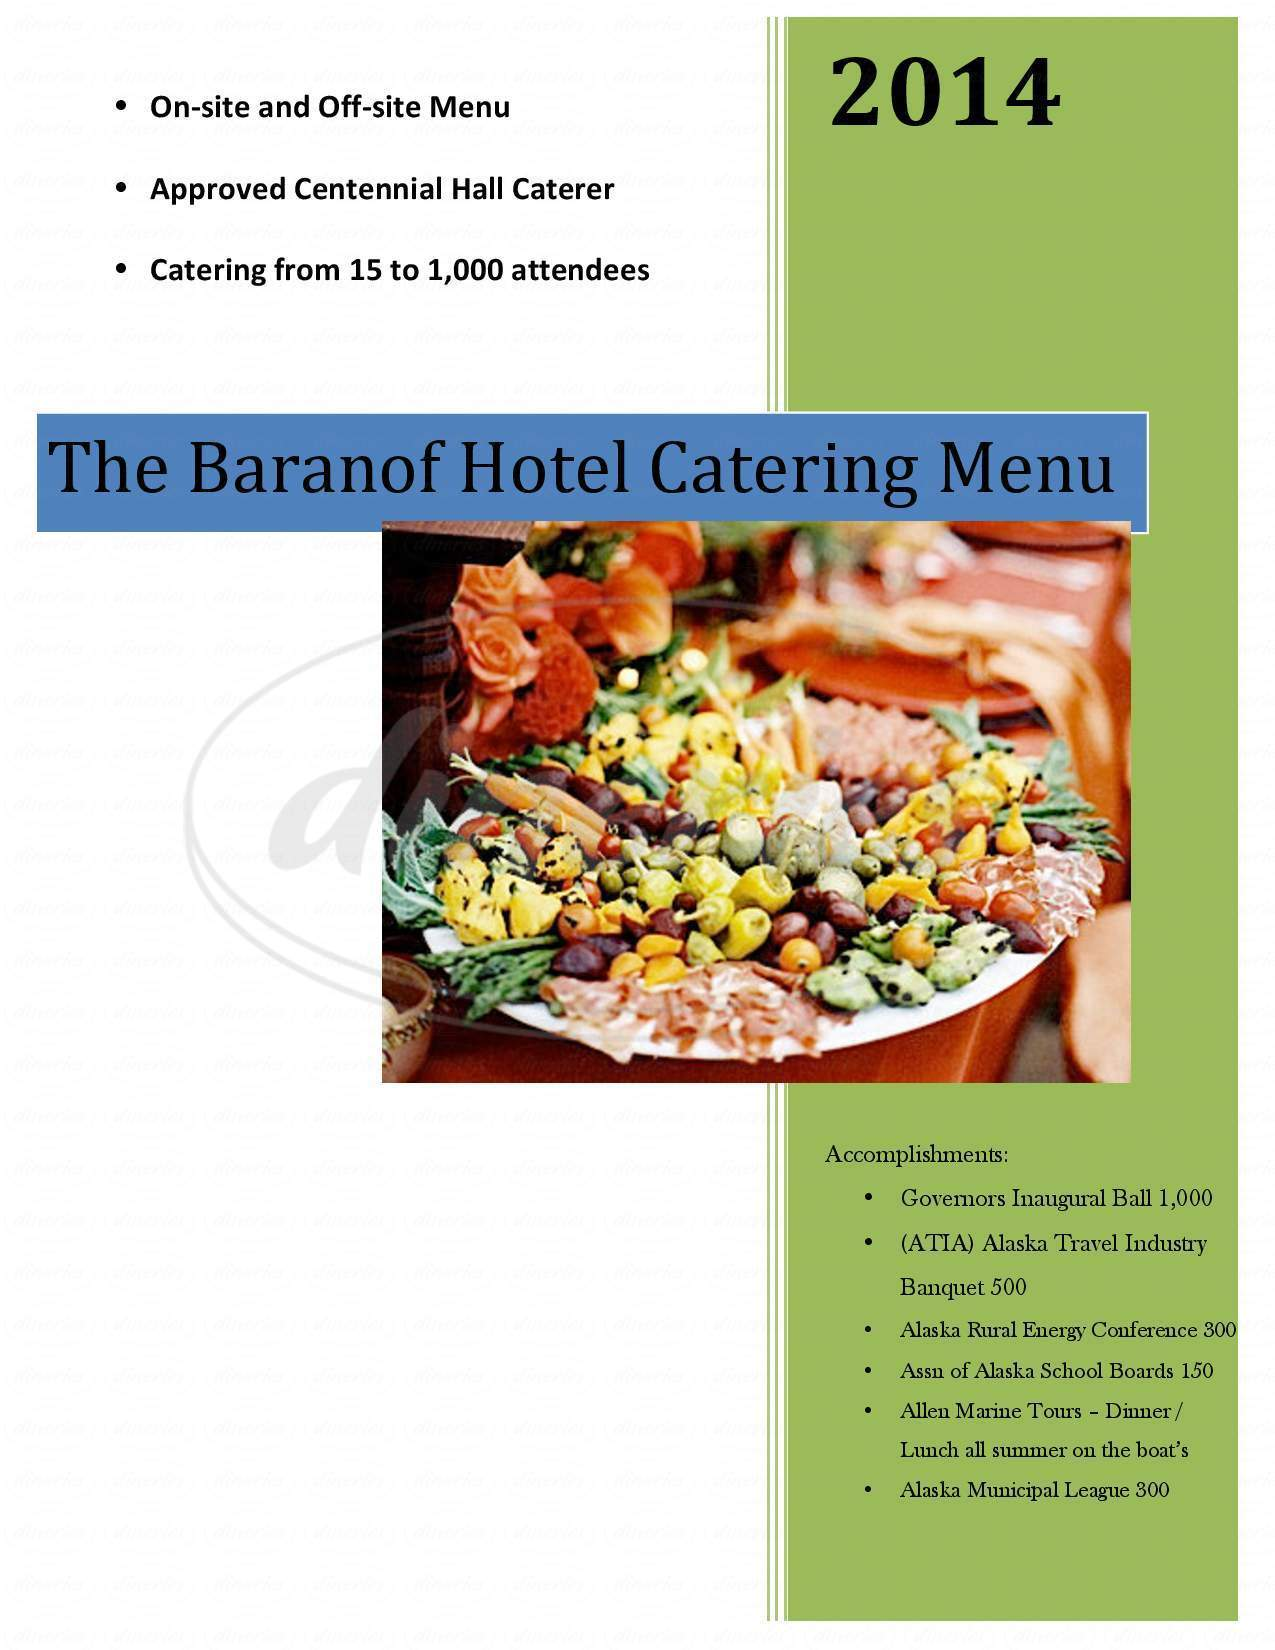 menu for Baranof Hotel